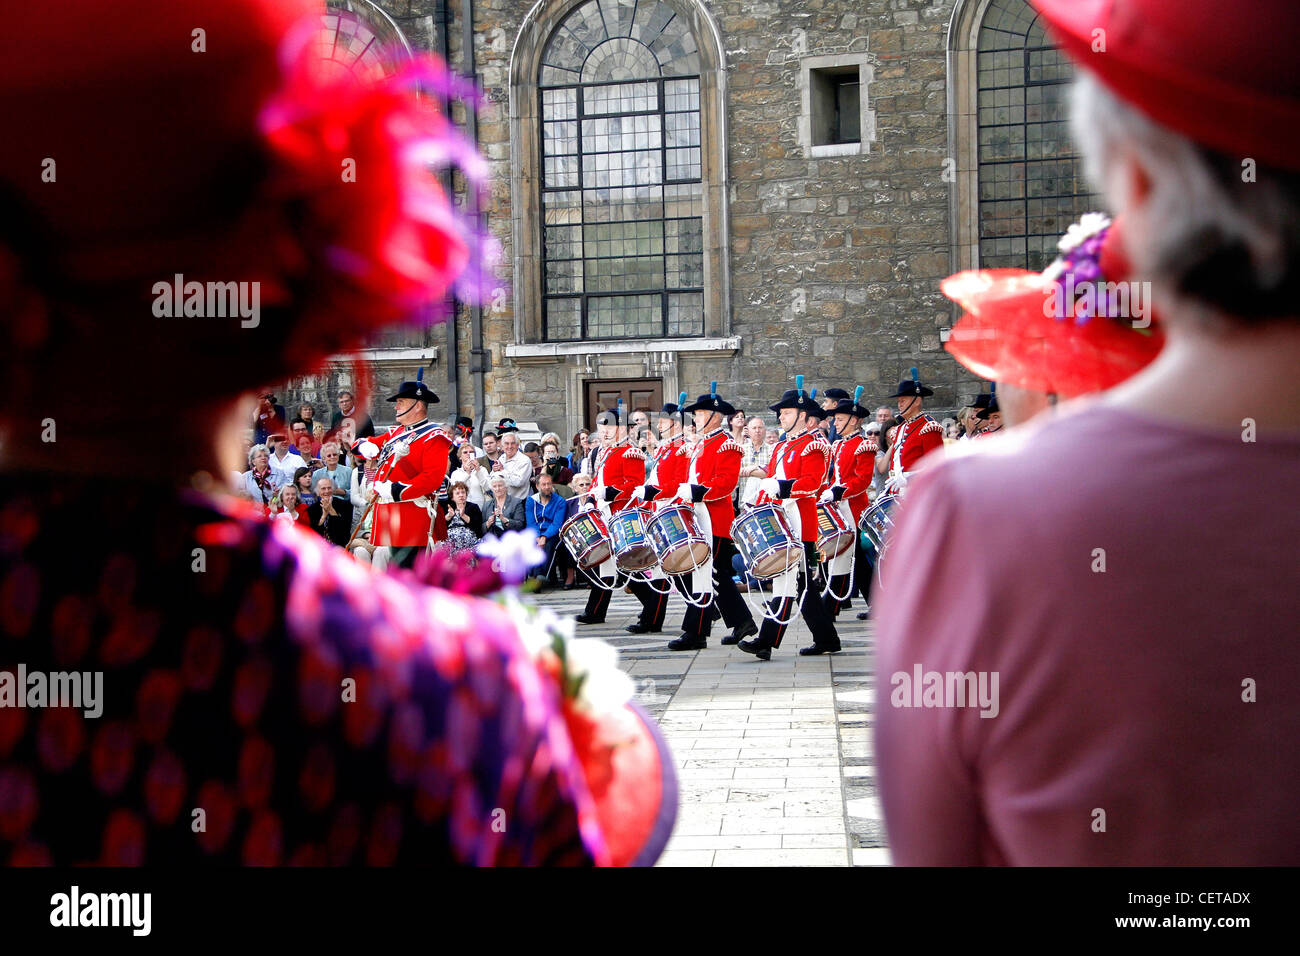 A marching band parading at the London Pearly Kings & Queens Society Costermongers Harvest Festival in Guildhall Stock Photo